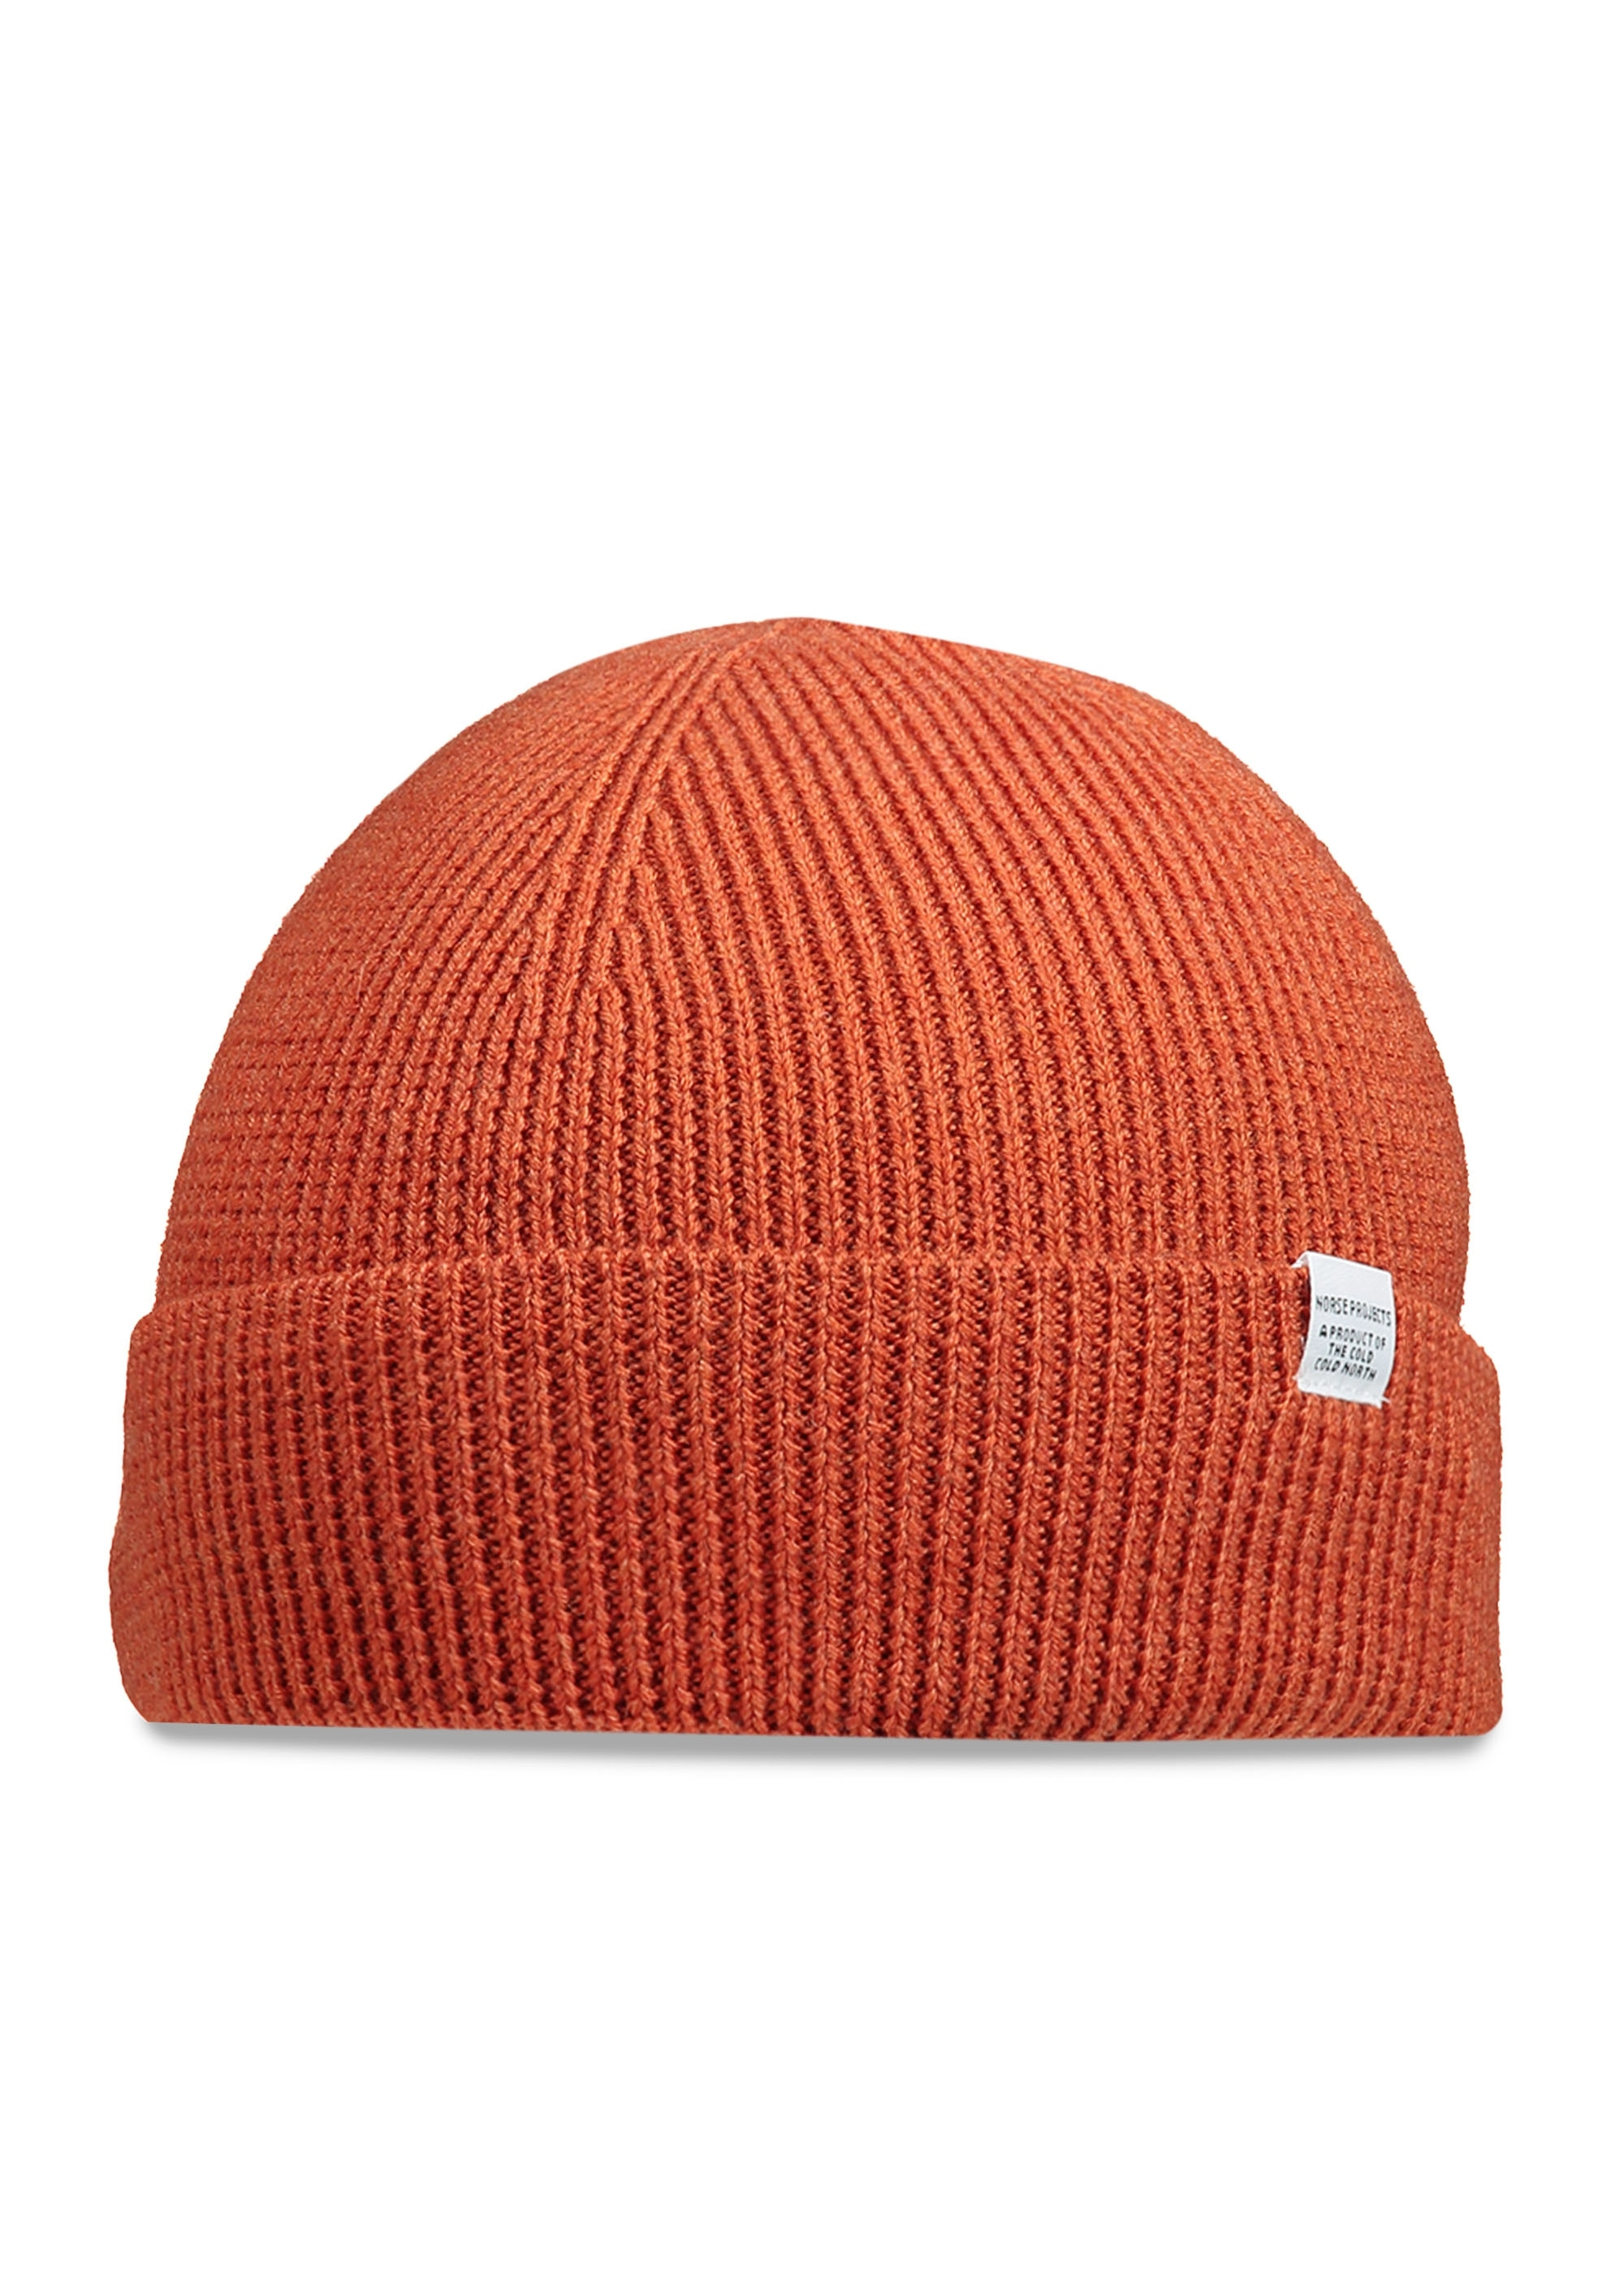 167d8c1fa91 Norse Projects Norse Rib Beanie - Burned Red - Triads Mens from ...